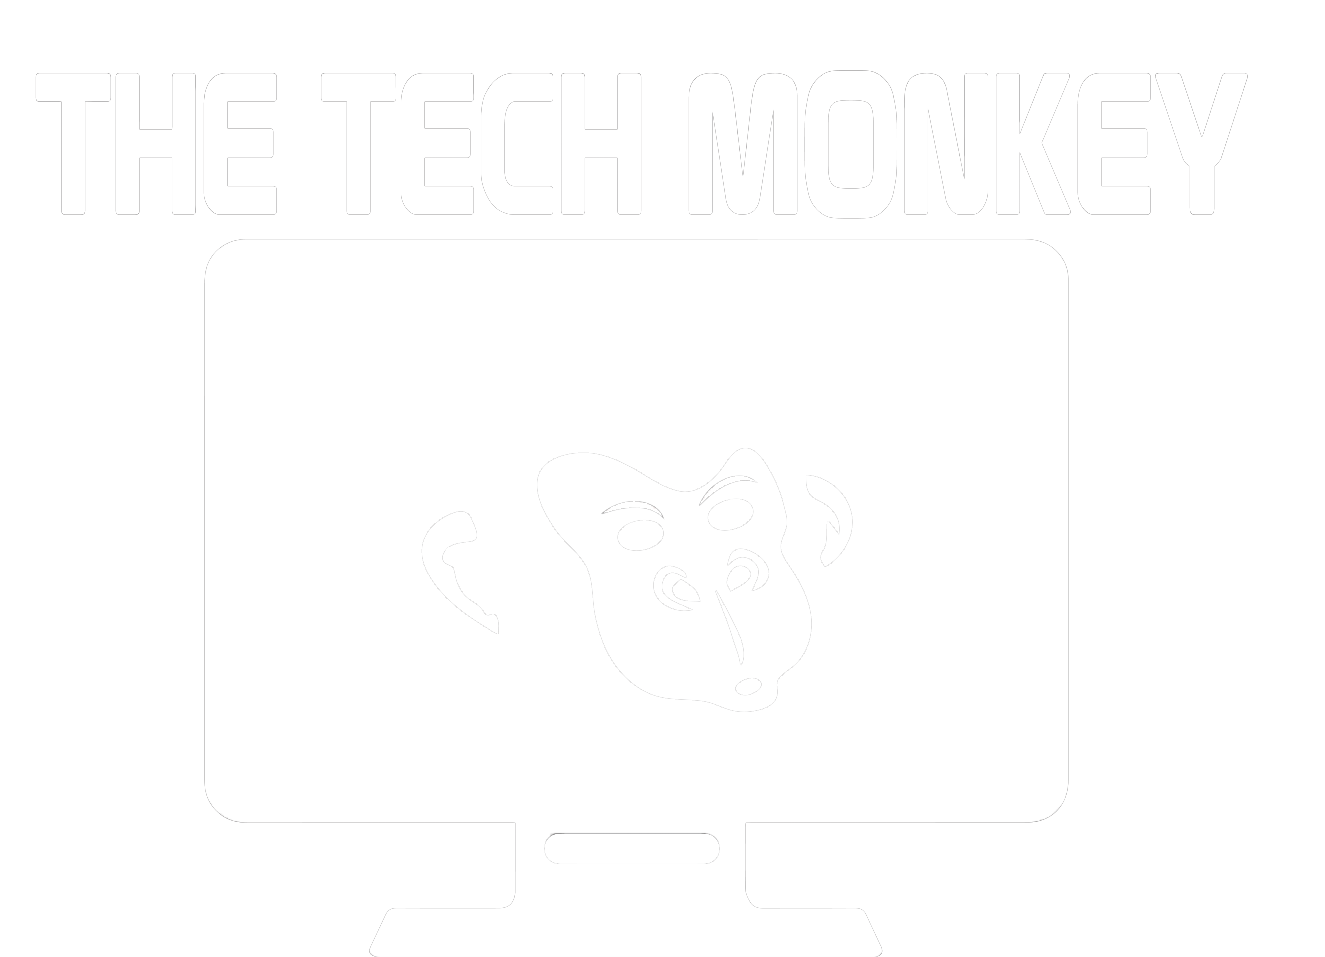 The Tech Monkey